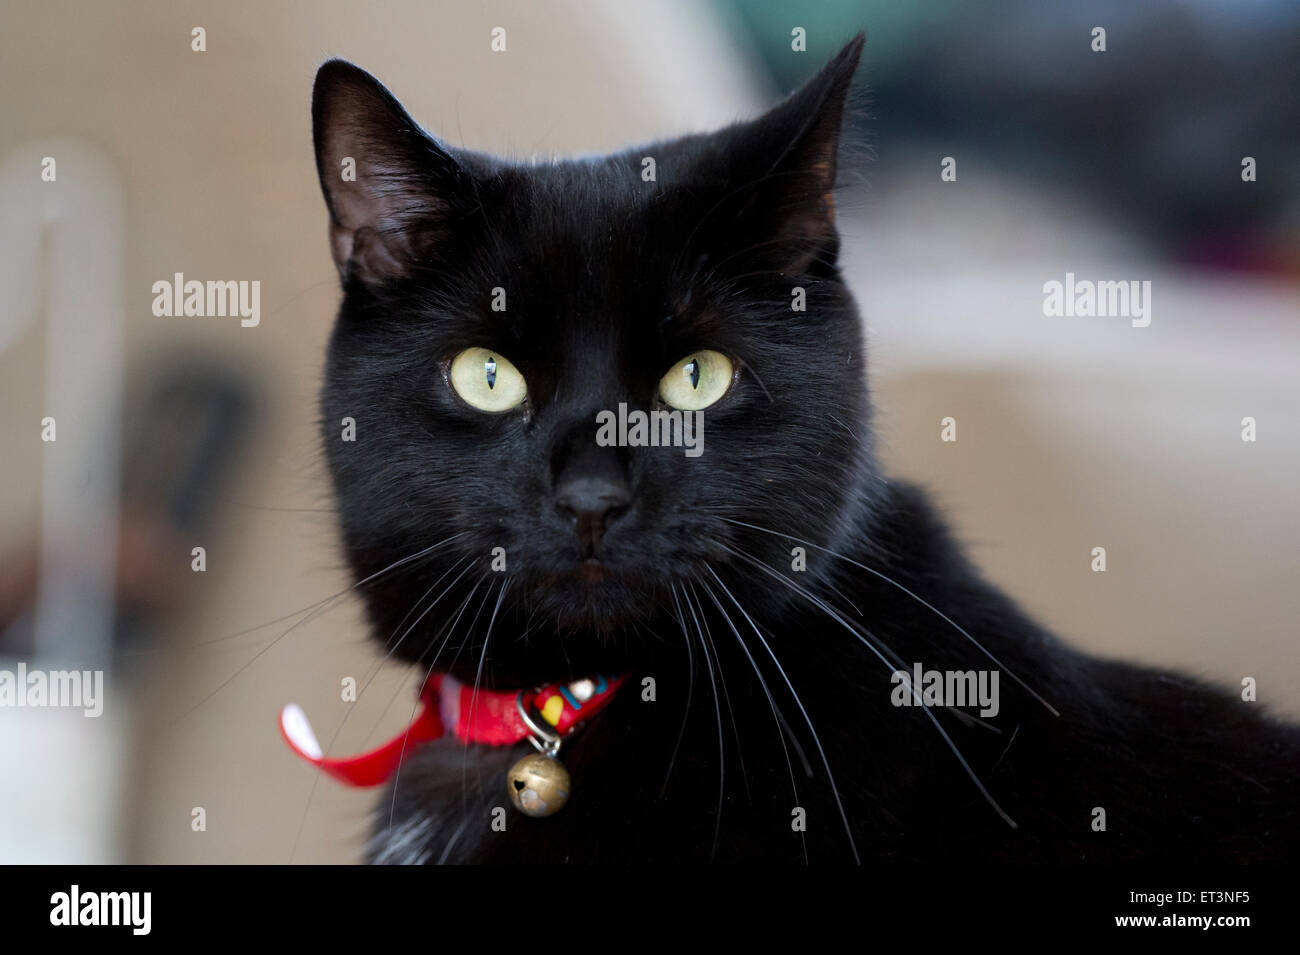 A black British Shorthaired cat - Stock Image